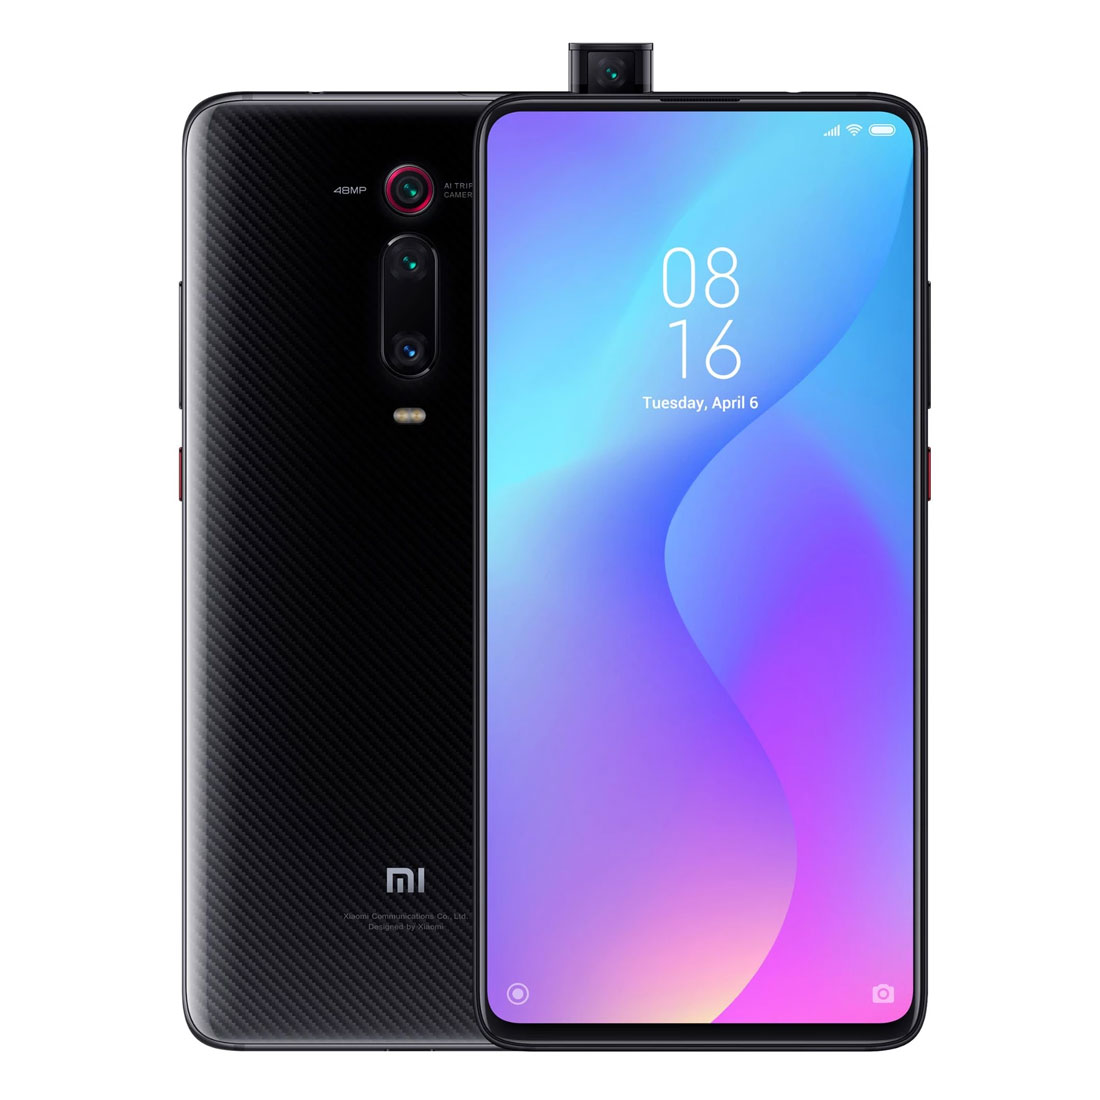 Xiaomi MI 9T (Dual Sim 4G/4G, 128GB/6GB, 48MP) - Carbon Black